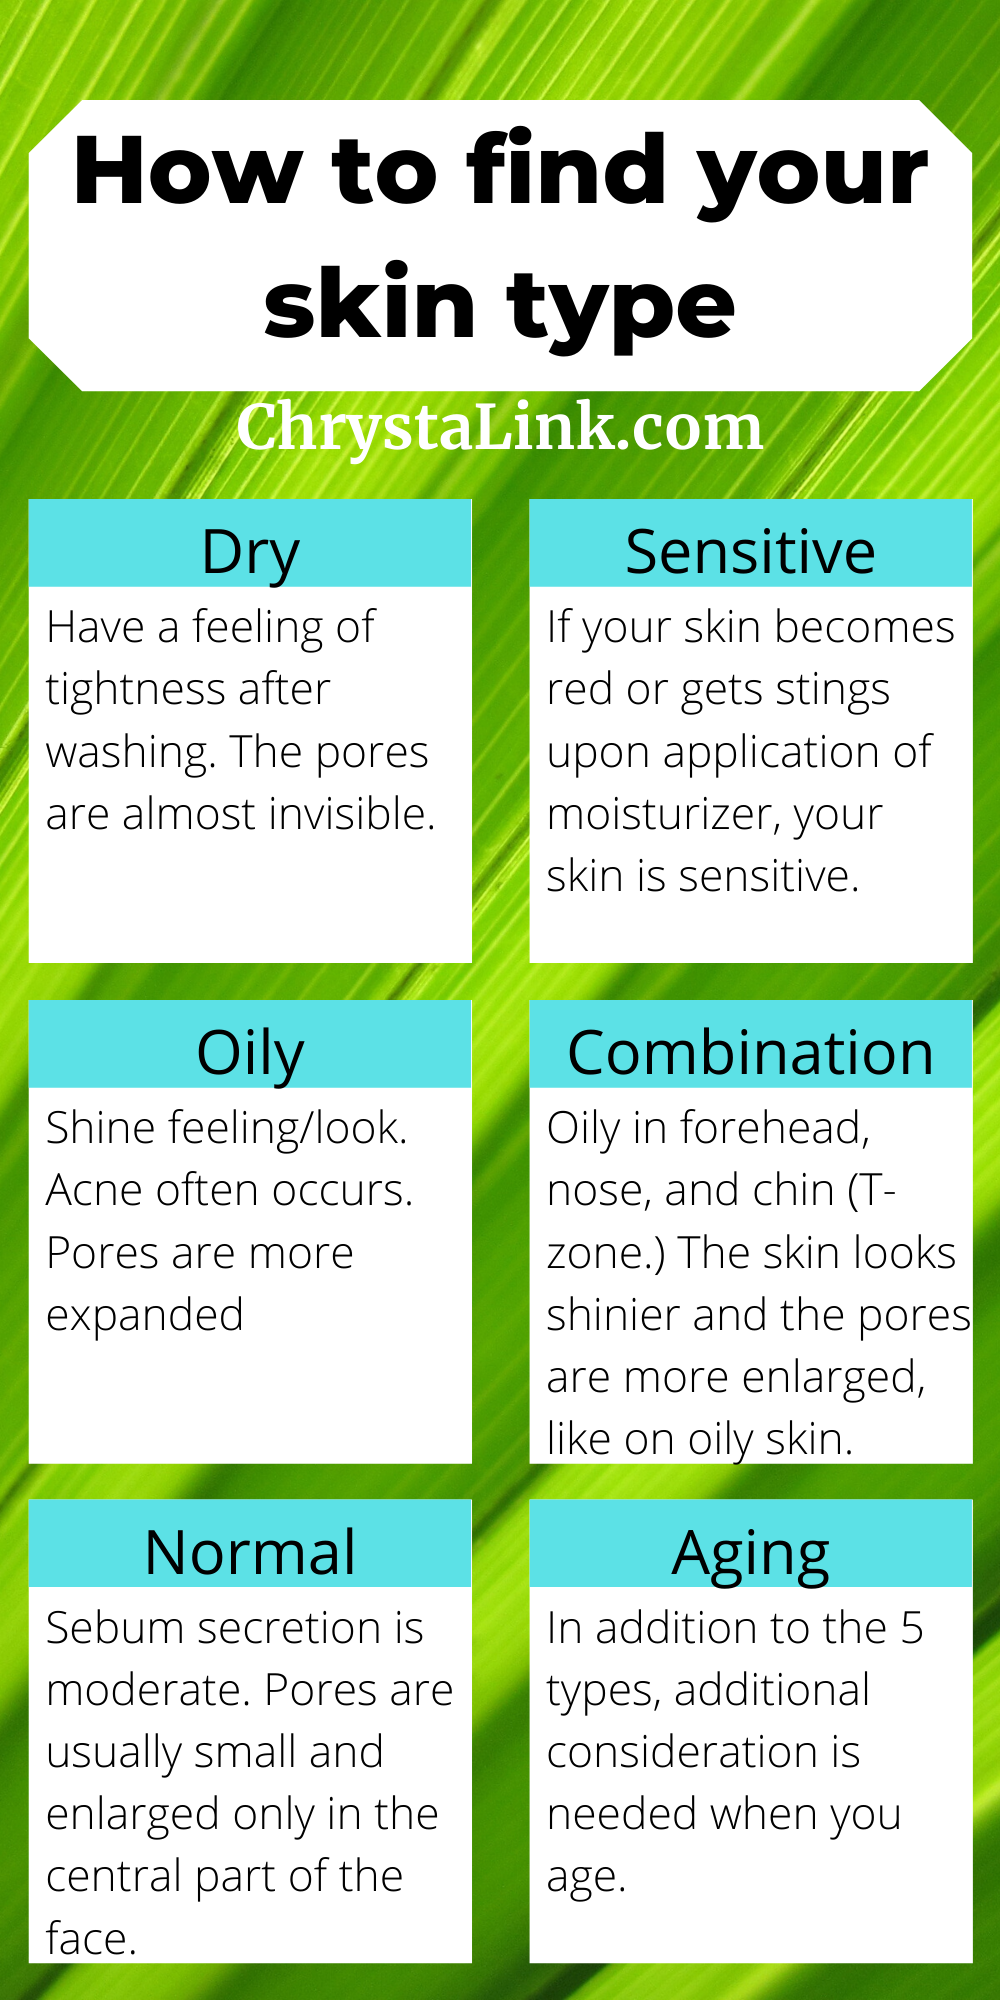 Your Skin Type How To Find In 2020 Daily Skin Care Routine Skin Care Daily Skin Care